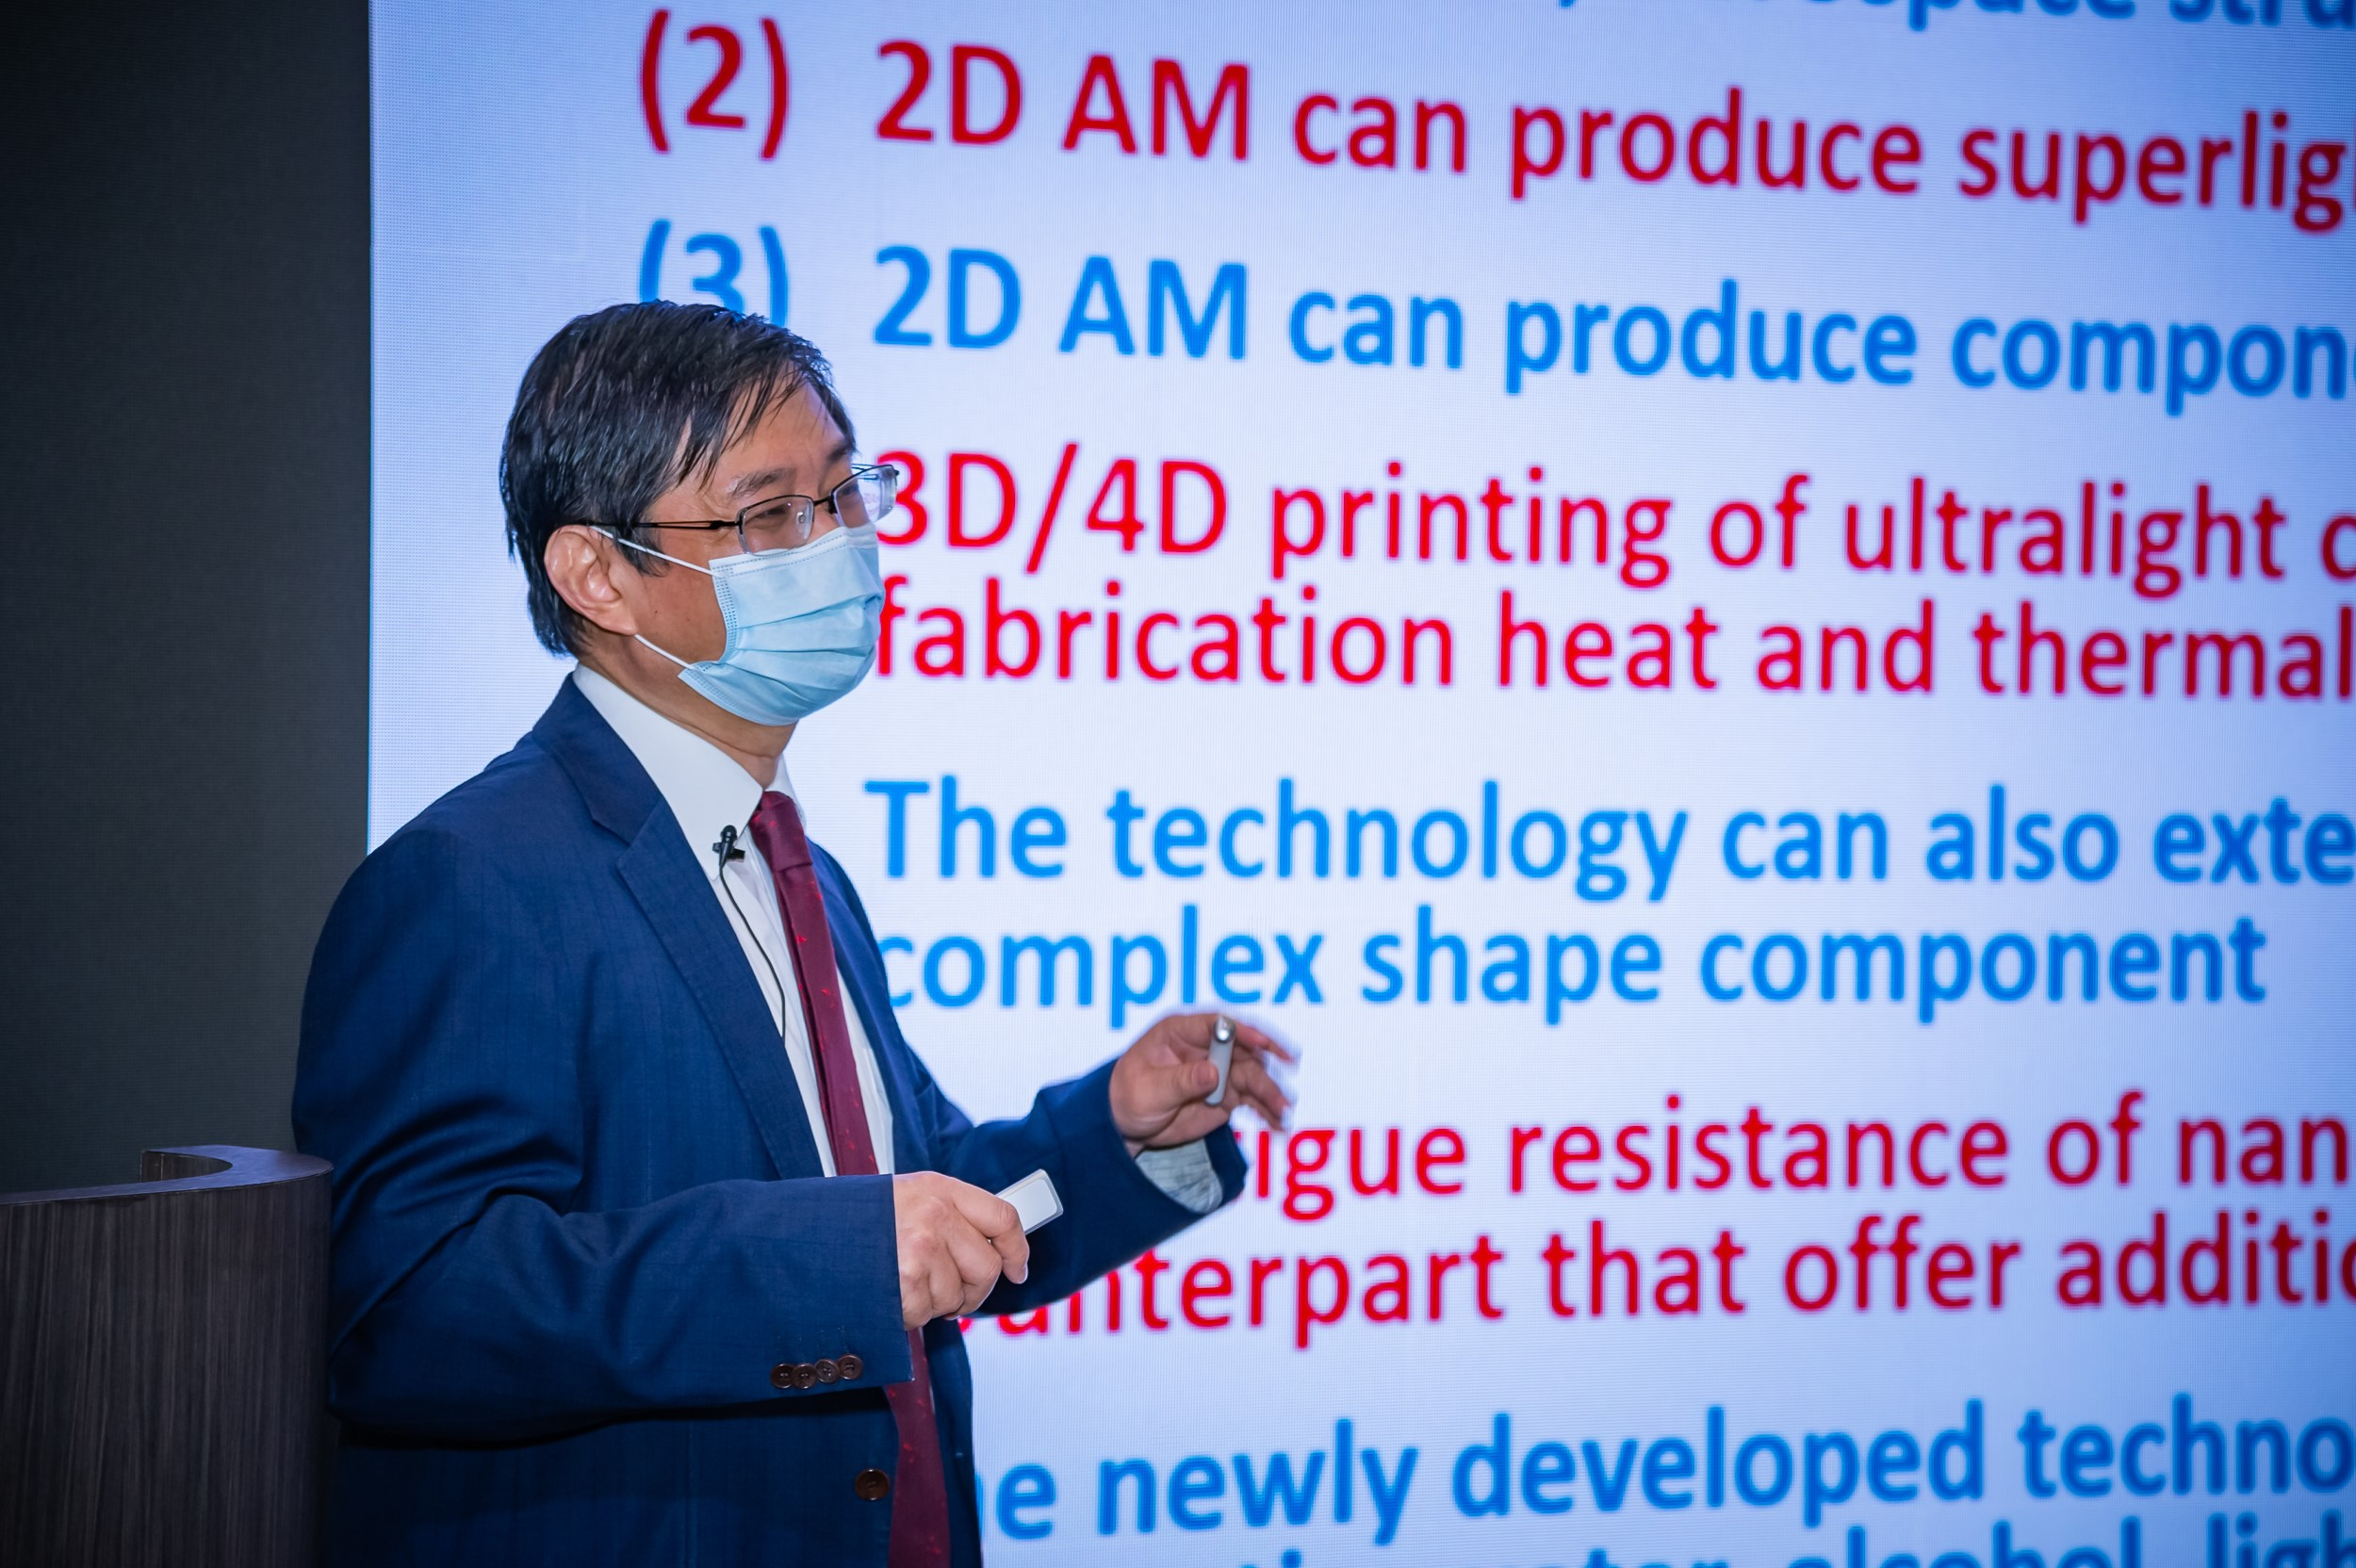 Progress in Additive Manufacturing: From 2D Printing to 4D Printing of Structural Materials and Functional Devices